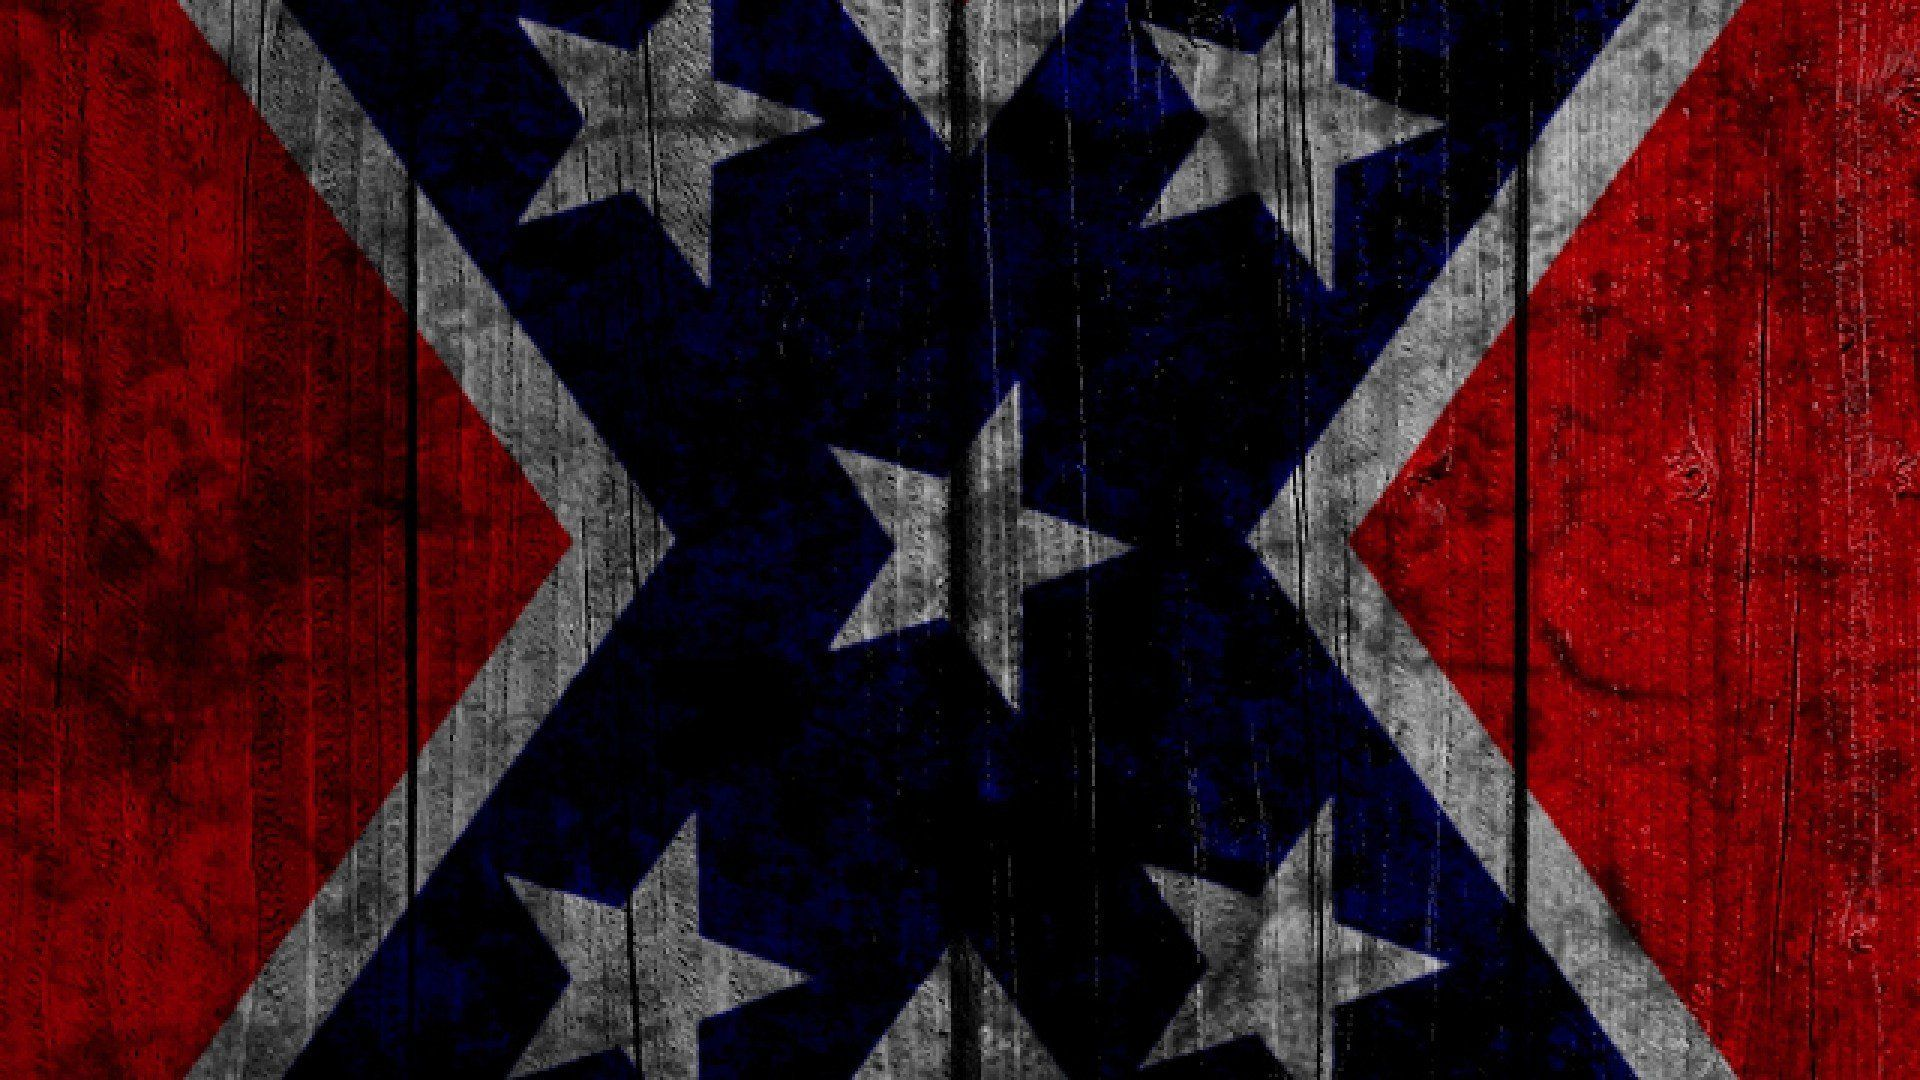 Free Download Rebel Wallpapers For Phone 1920x1080 For Your